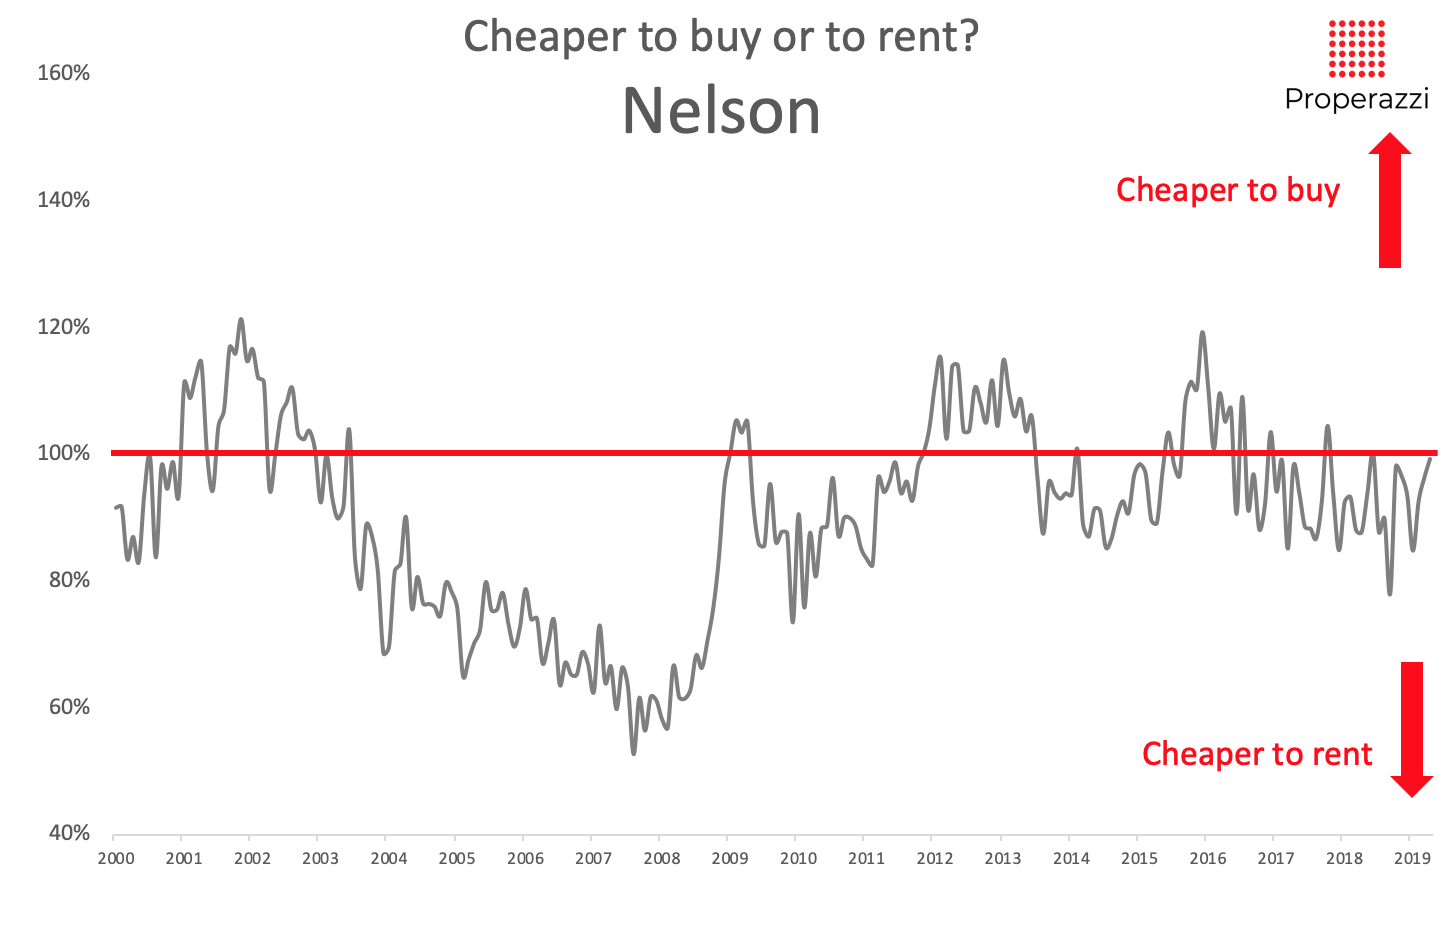 To rent or to buy in Nelson May 2019